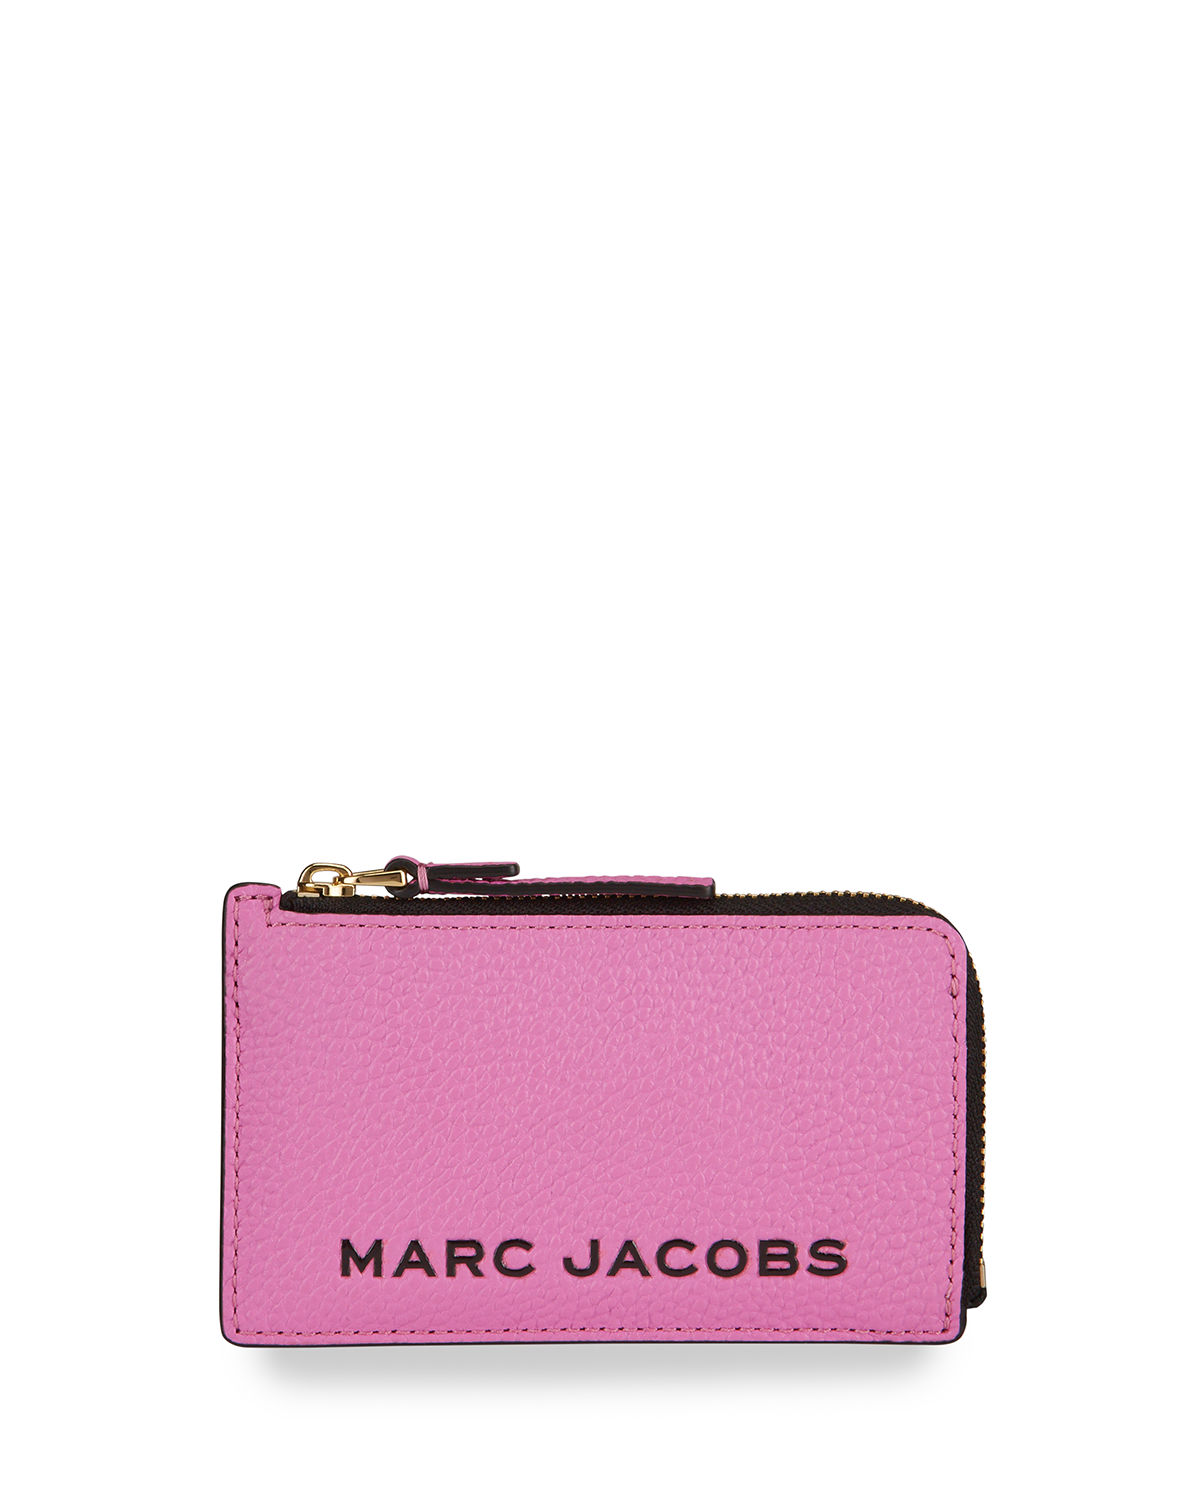 The Marc Jacobs Wallets SMALL LEATHER ZIP WALLET